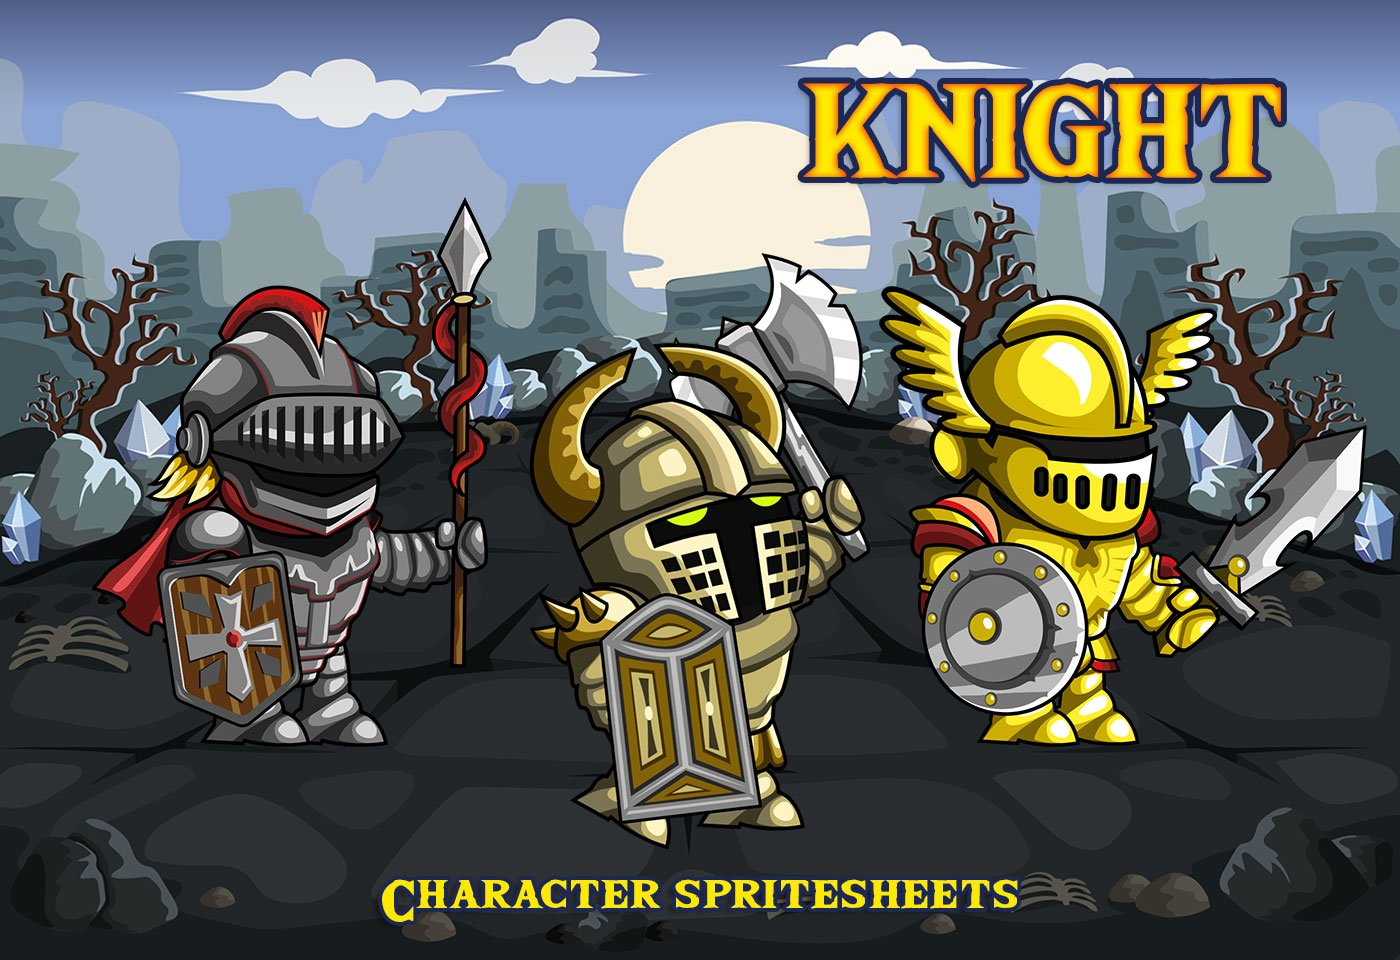 2D Fantasy Knight Free Character Sprite